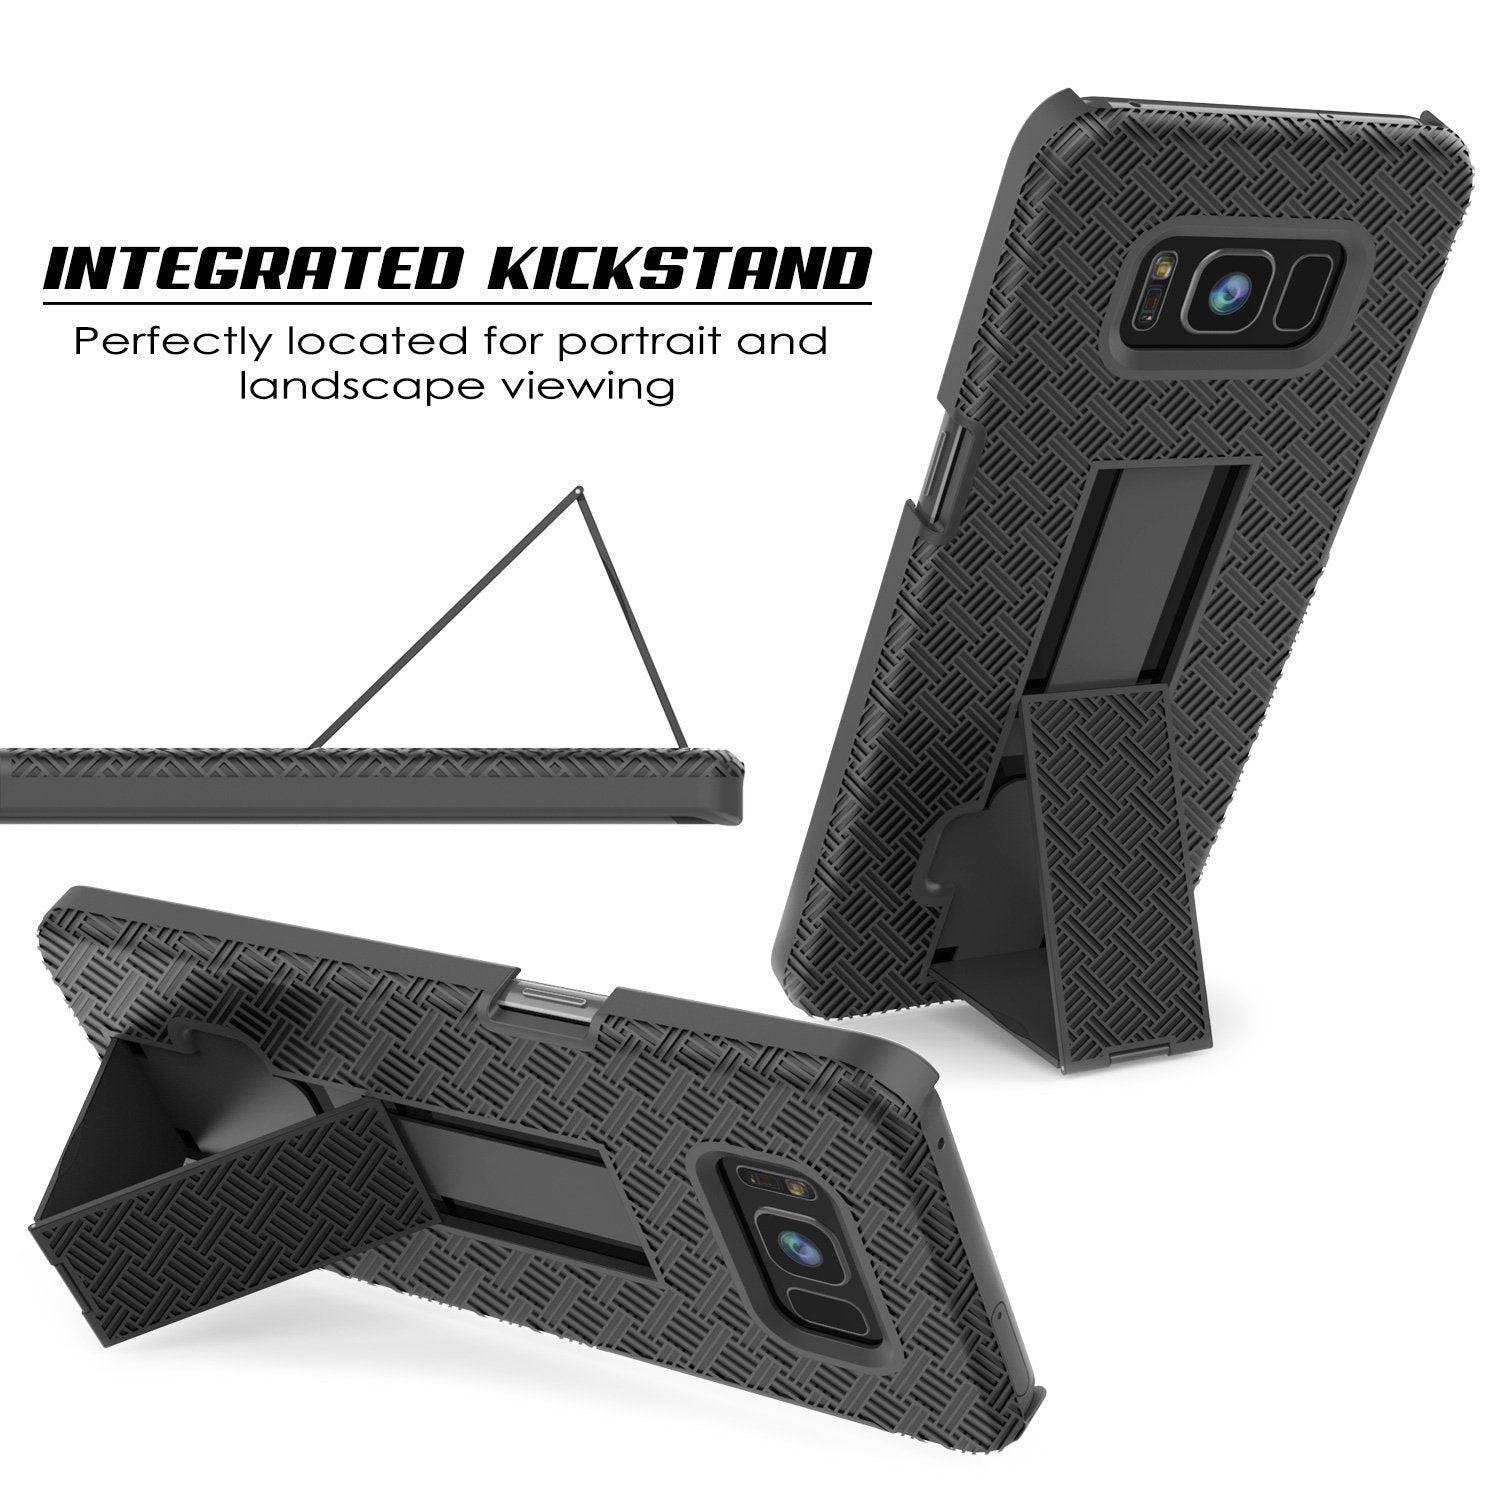 Black Punkcase Galaxy S8 Plus Case With Screen Protector Holster Belt Clip /& Built-In Kickstand Non Slip Dual Layer Hybrid TPU Full Body Protection for Samsung Galaxy S8+ Edge Thin Fit